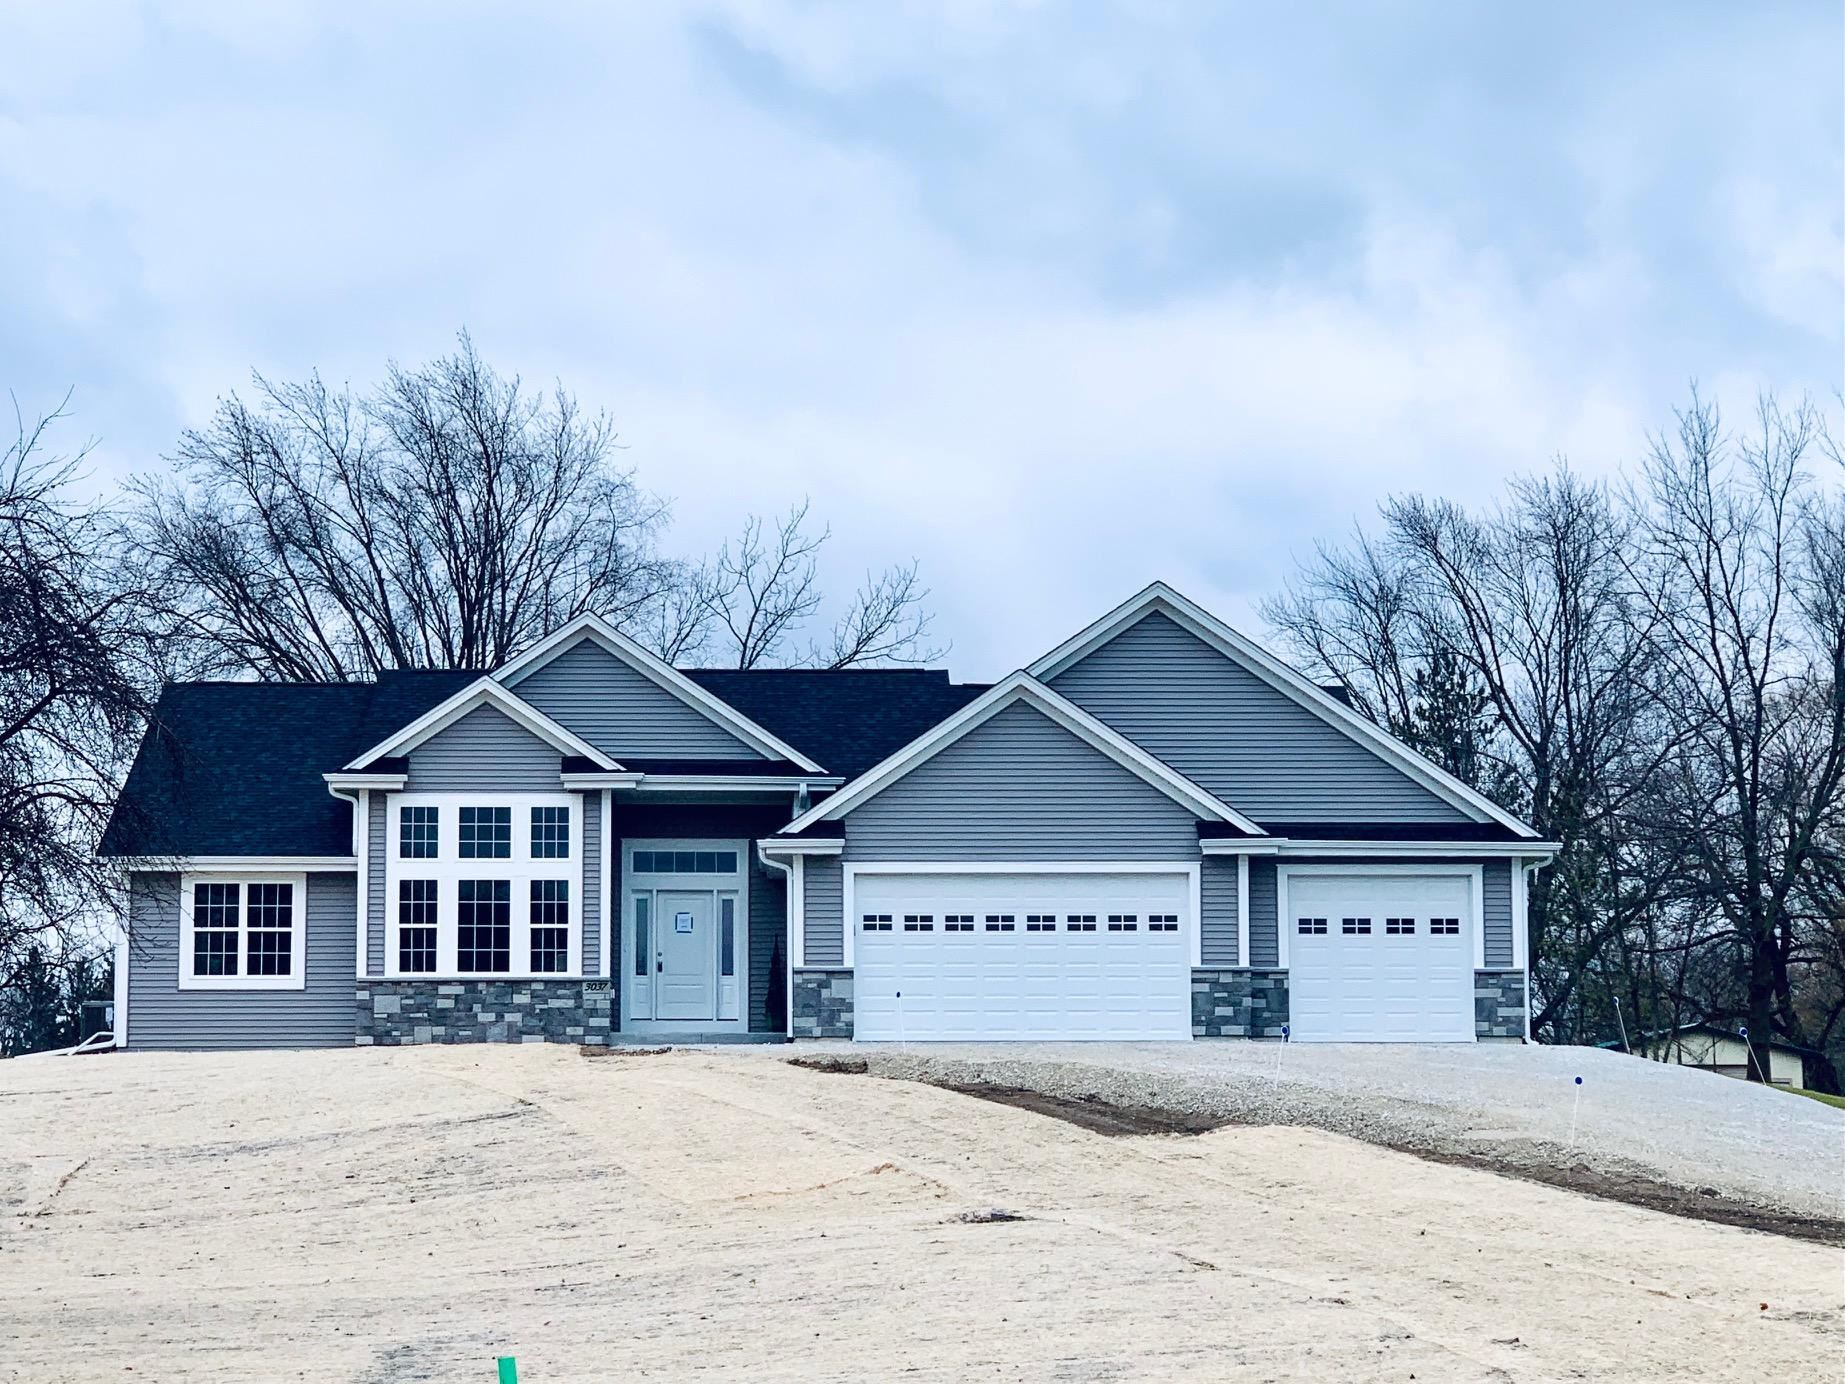 3037 W Forest Hill Ave, Franklin, WI 53132 - #: 1720004